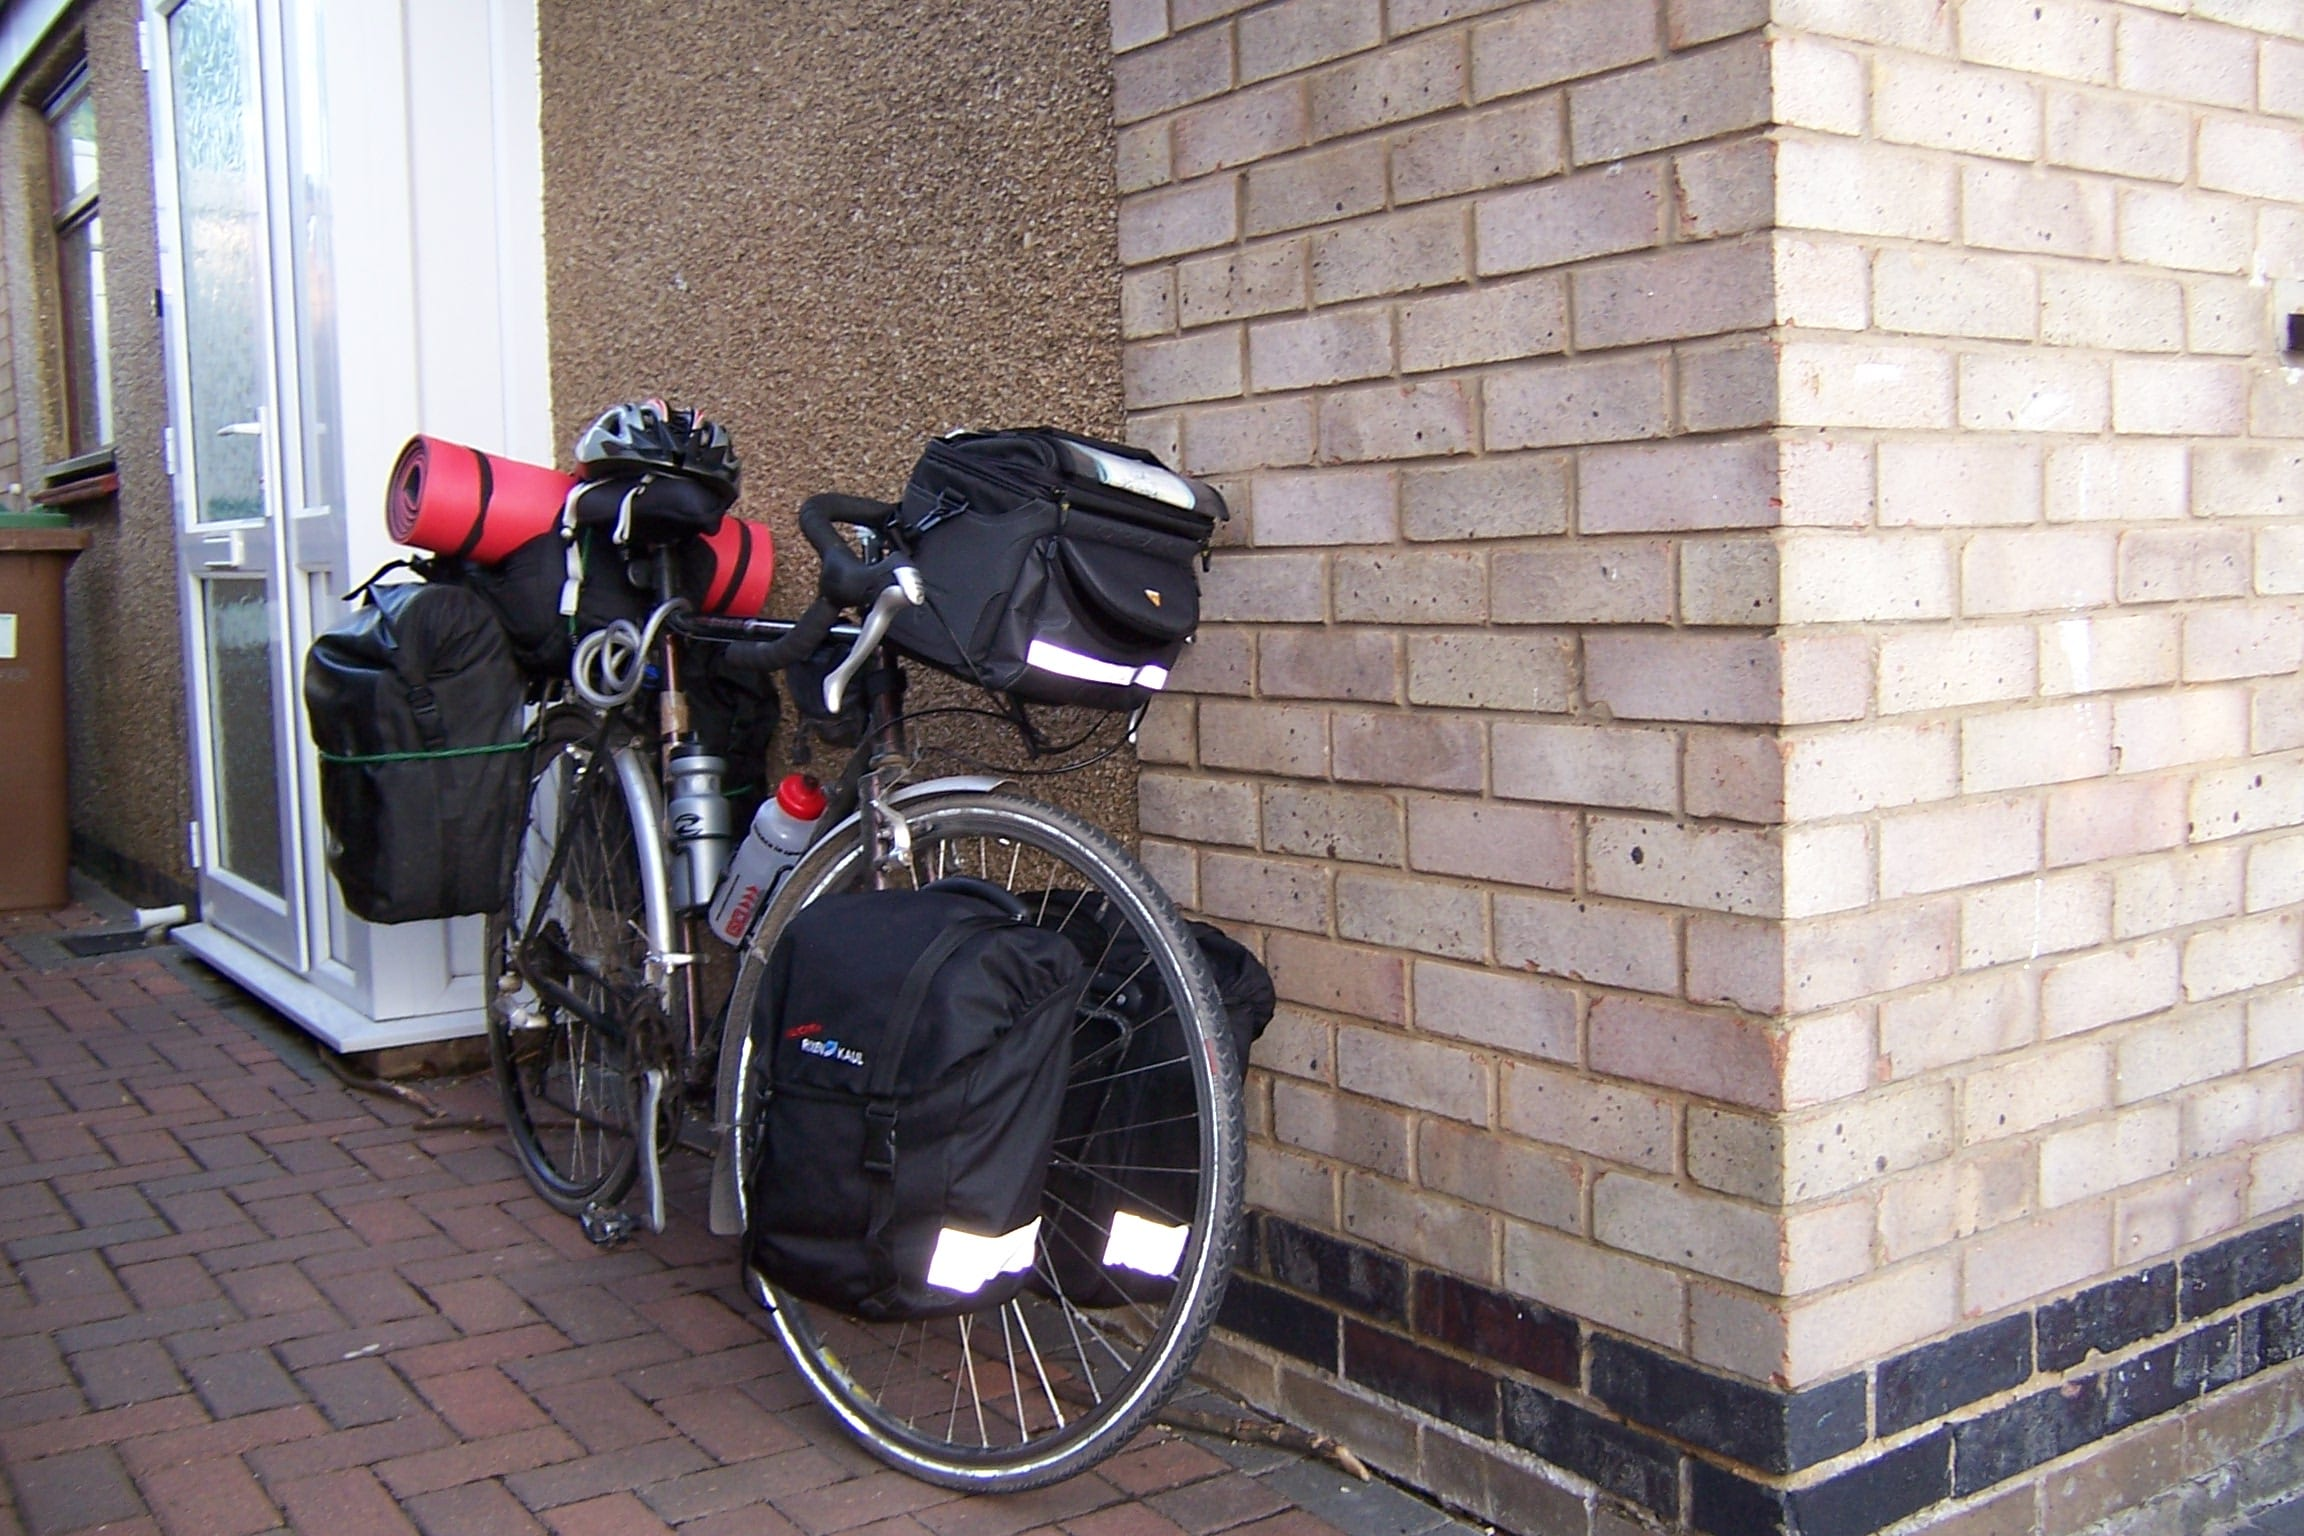 Cycling from Northampton to Dover - I left from my doorstep to cycle to South Africa!